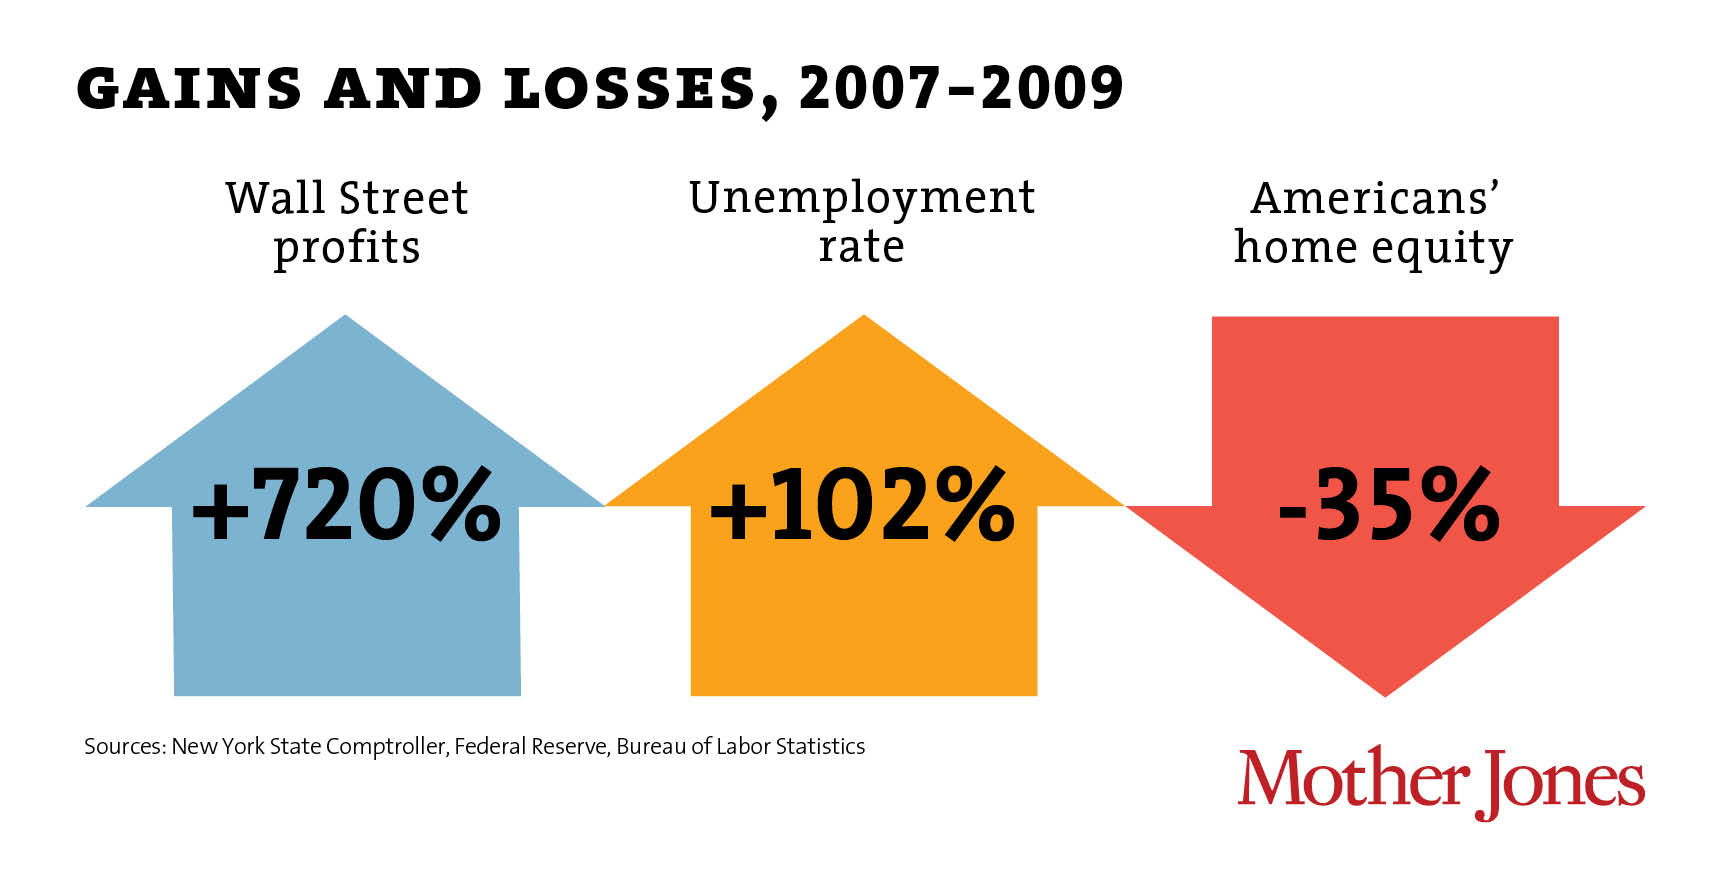 Gains and Losses, 2007-2009